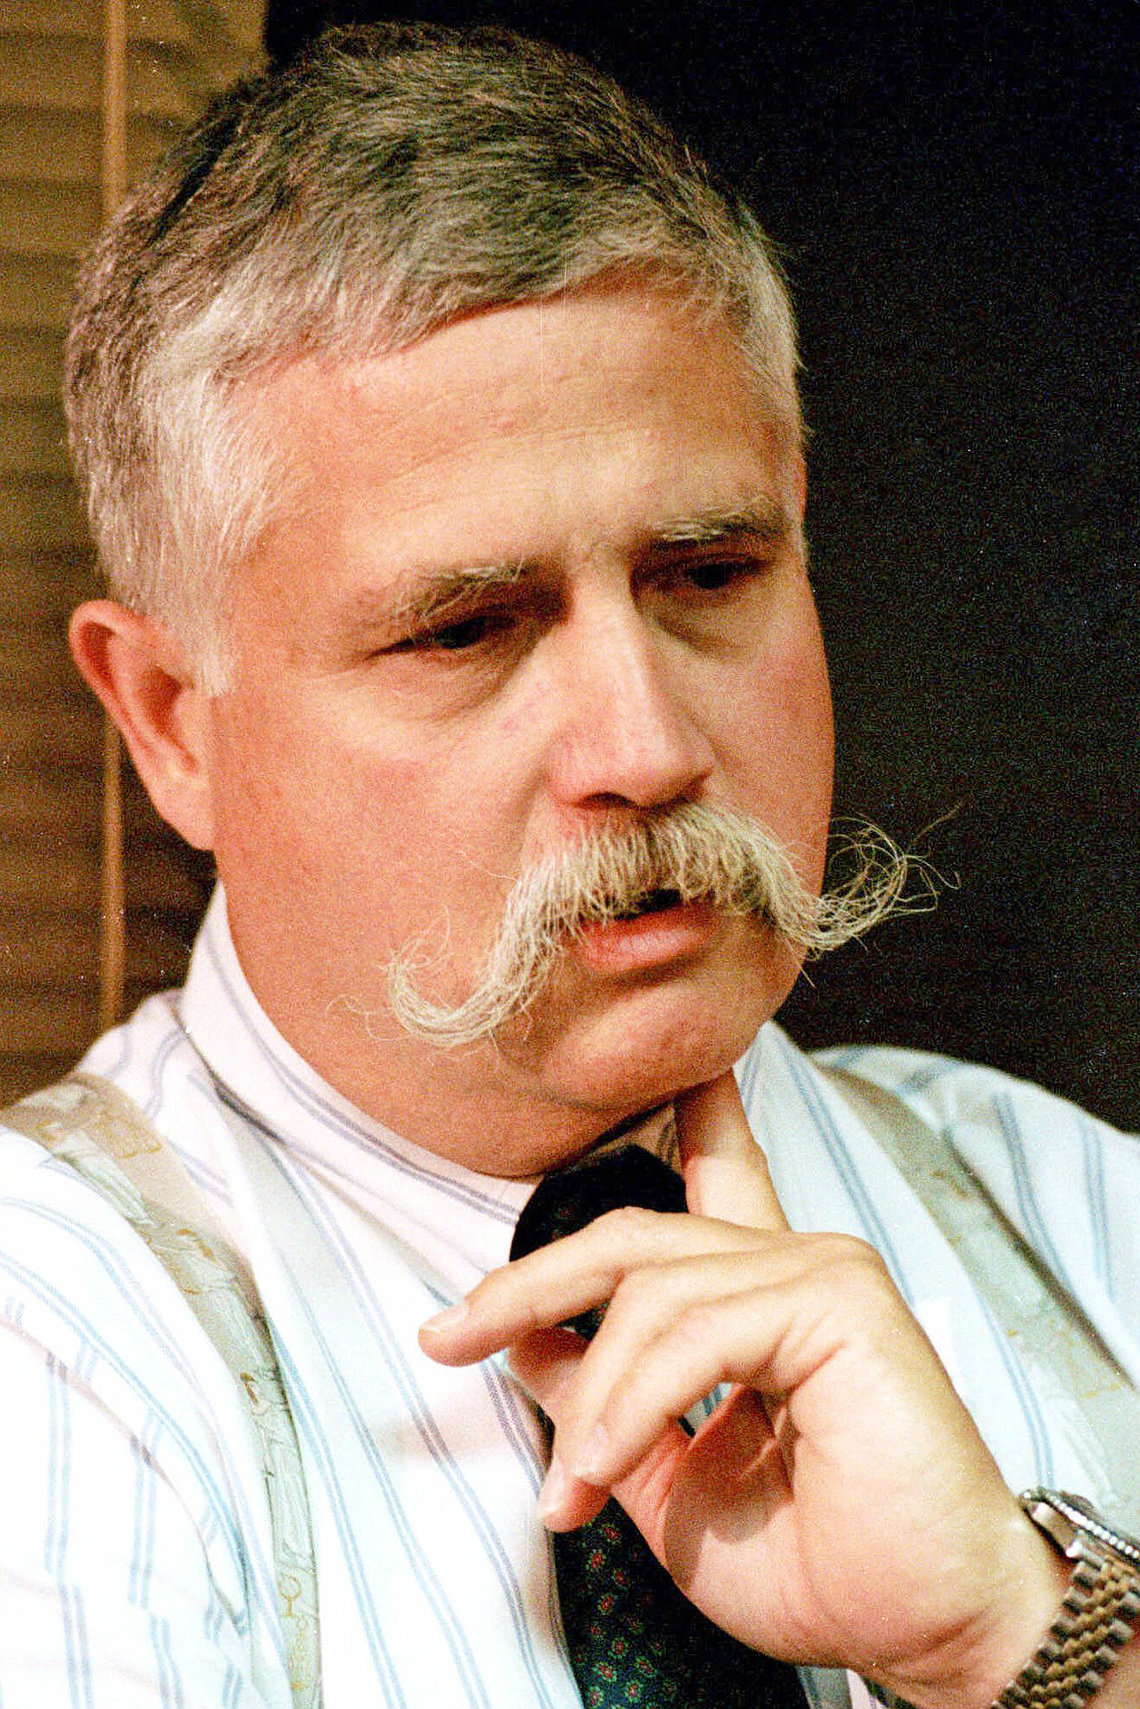 Former Harris County District Attorney Johnny B. Holmes in 1994.